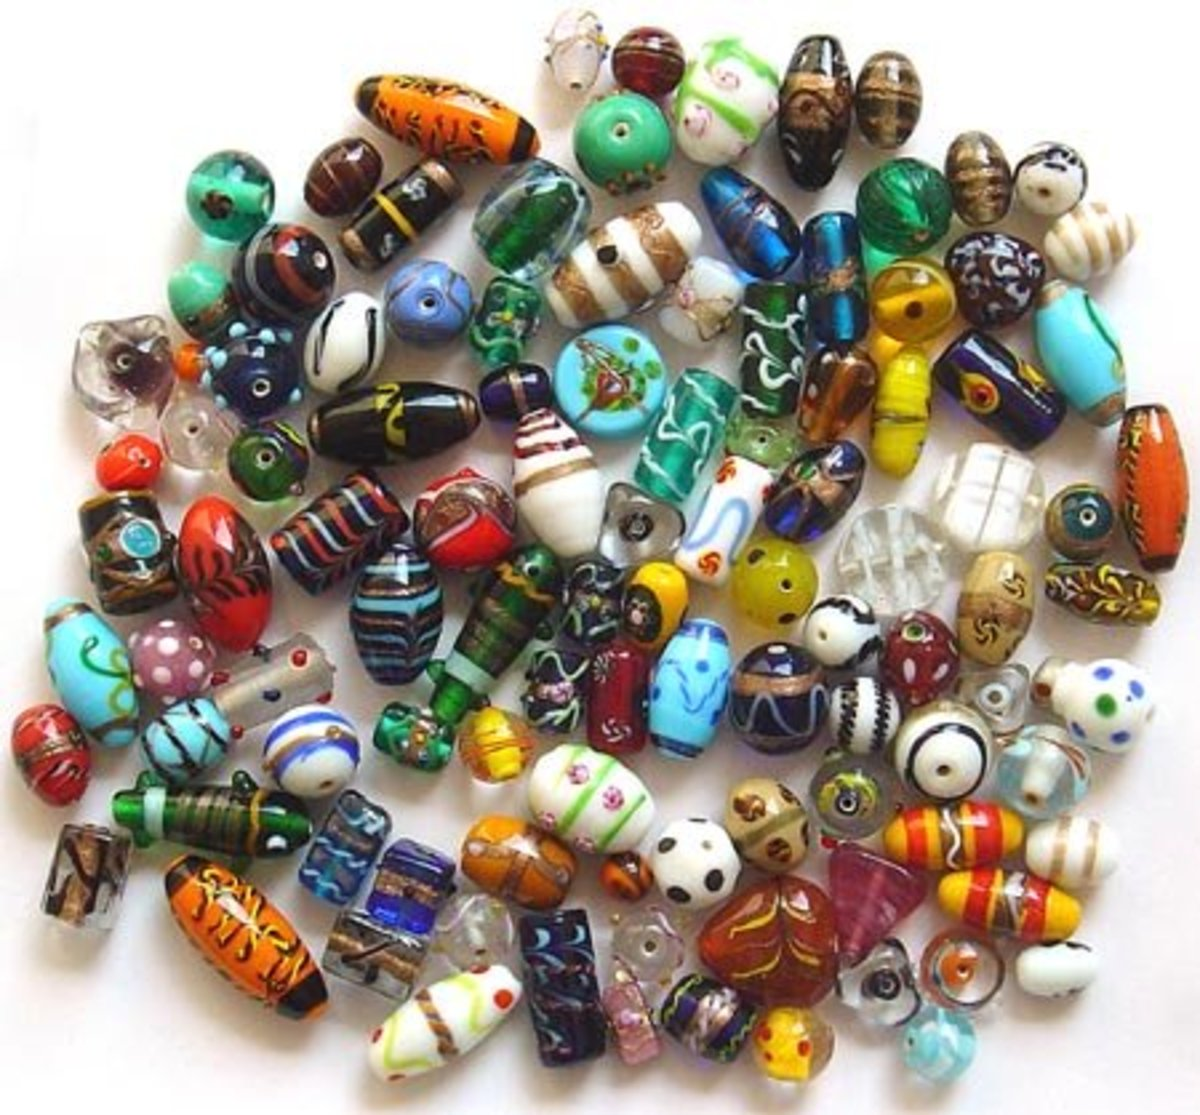 making beads wholesale jewelry coral and chips sea glass bead index bamboo wholesalebeads buy supplies